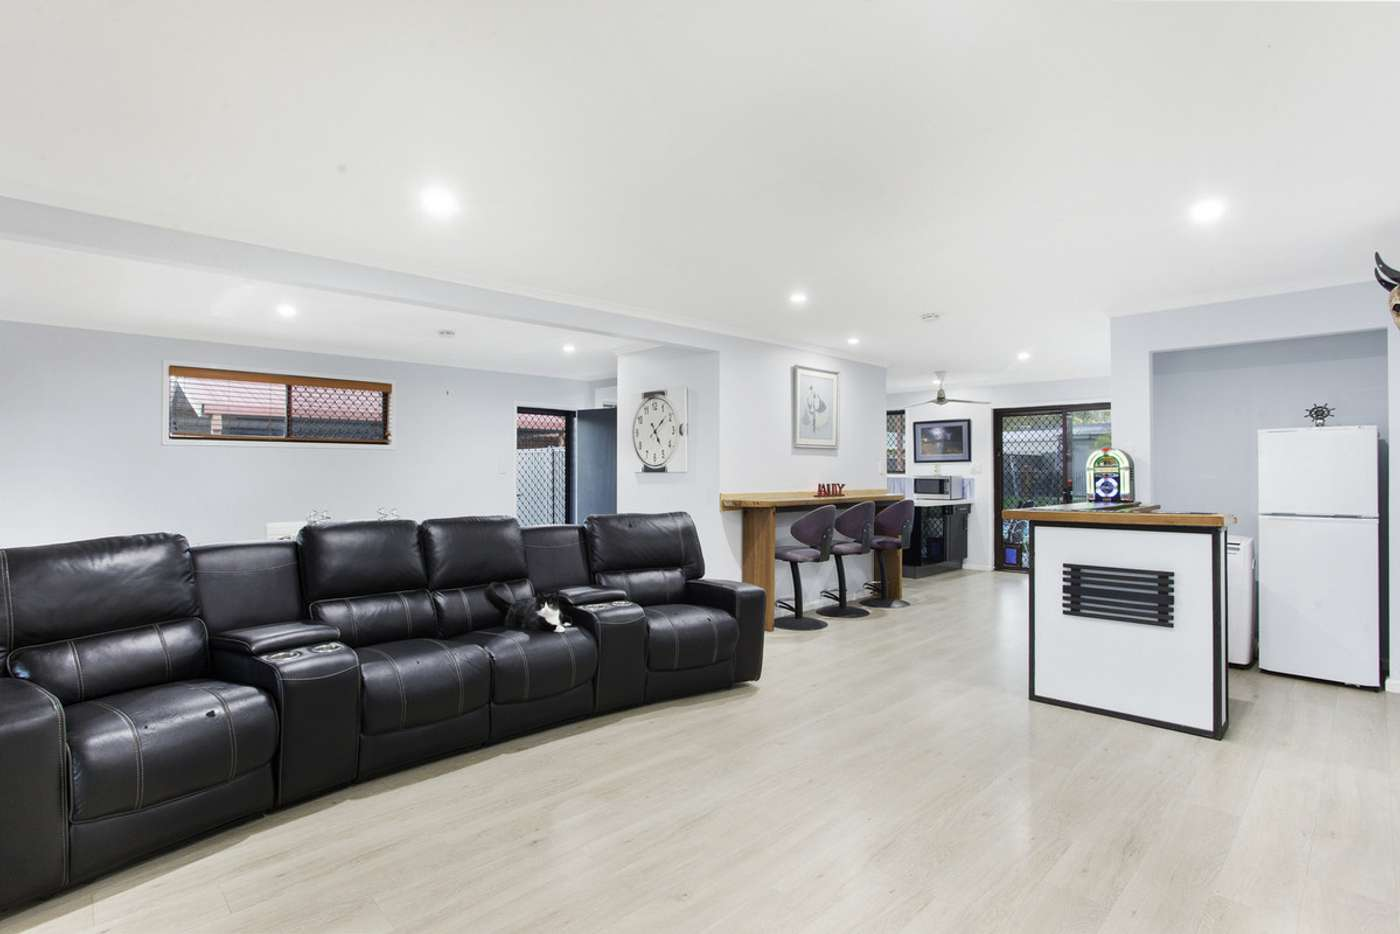 Fifth view of Homely house listing, 5 Dugandan Street, Nerang QLD 4211